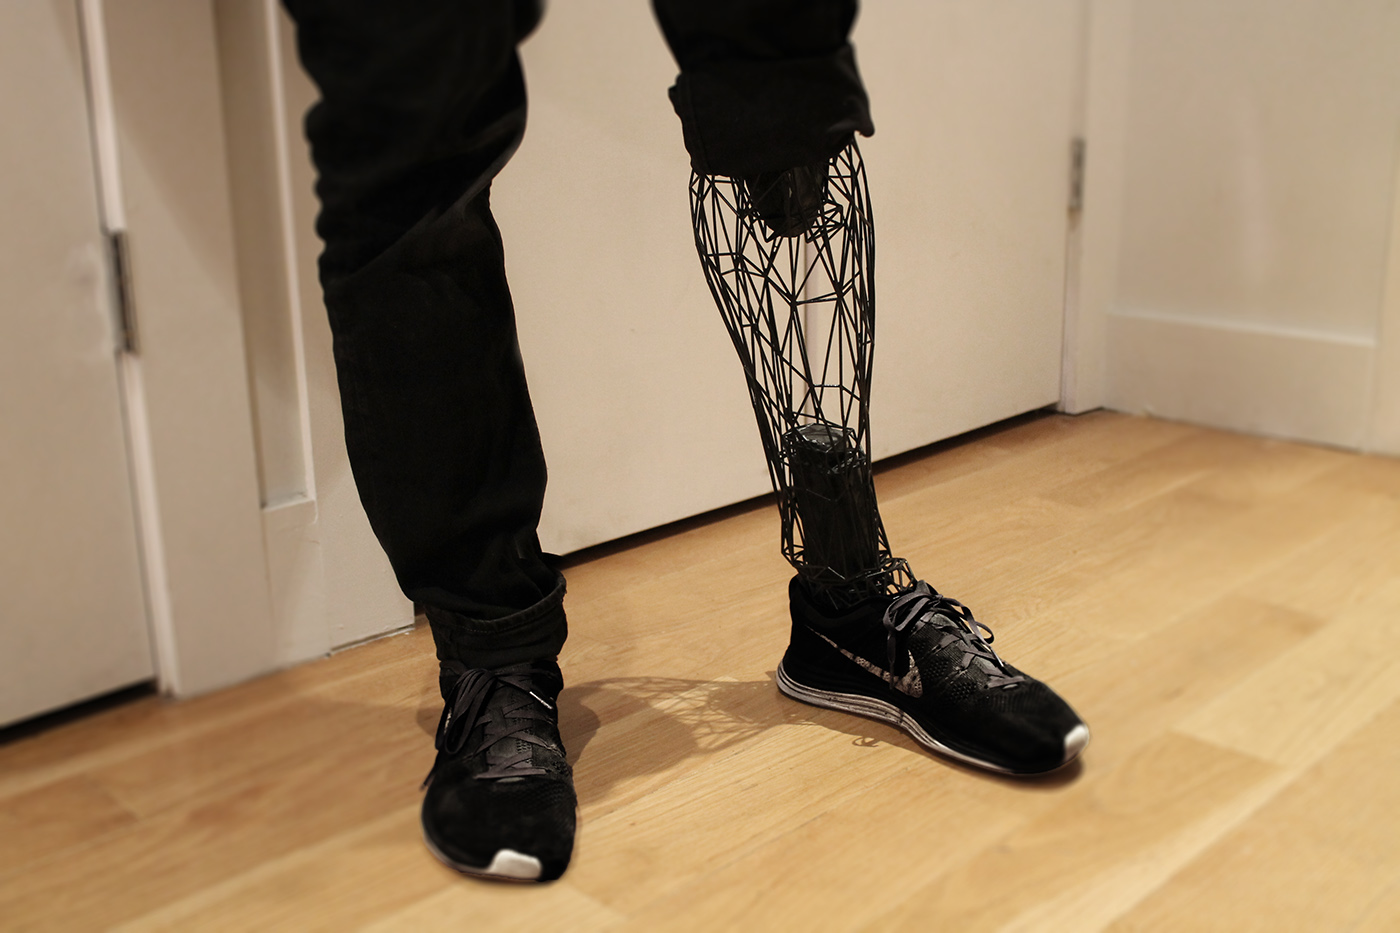 Prosthetic Limbs: 3D Printing for Athletes with Disabilities